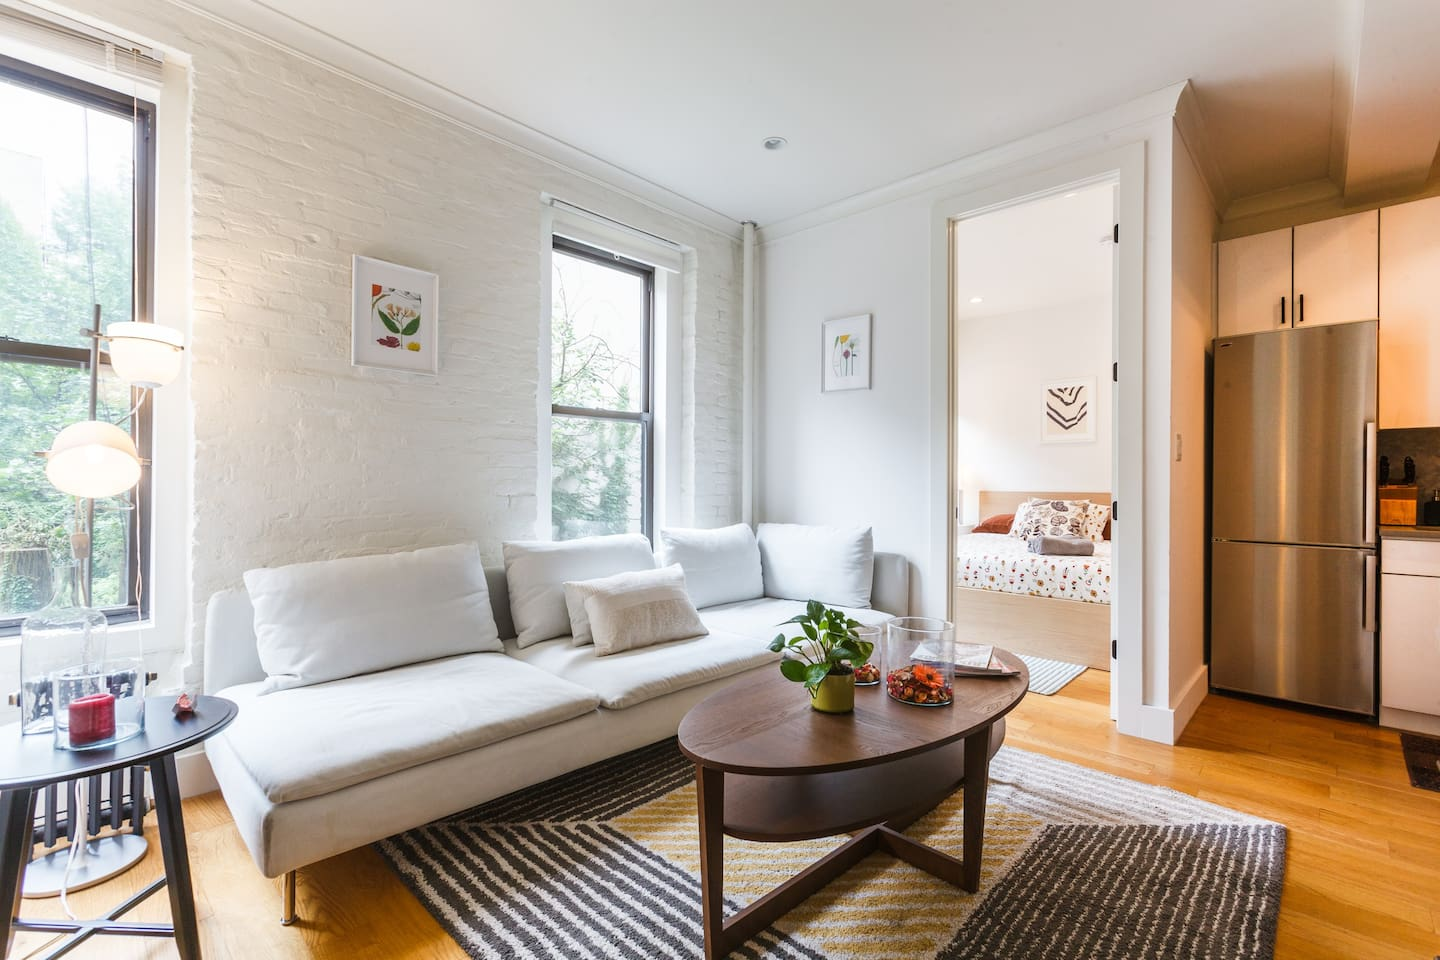 2 bedroom apartments for rent in nyc east village latest bestapartment 2018 for Rooms for rent in nyc with private bathroom